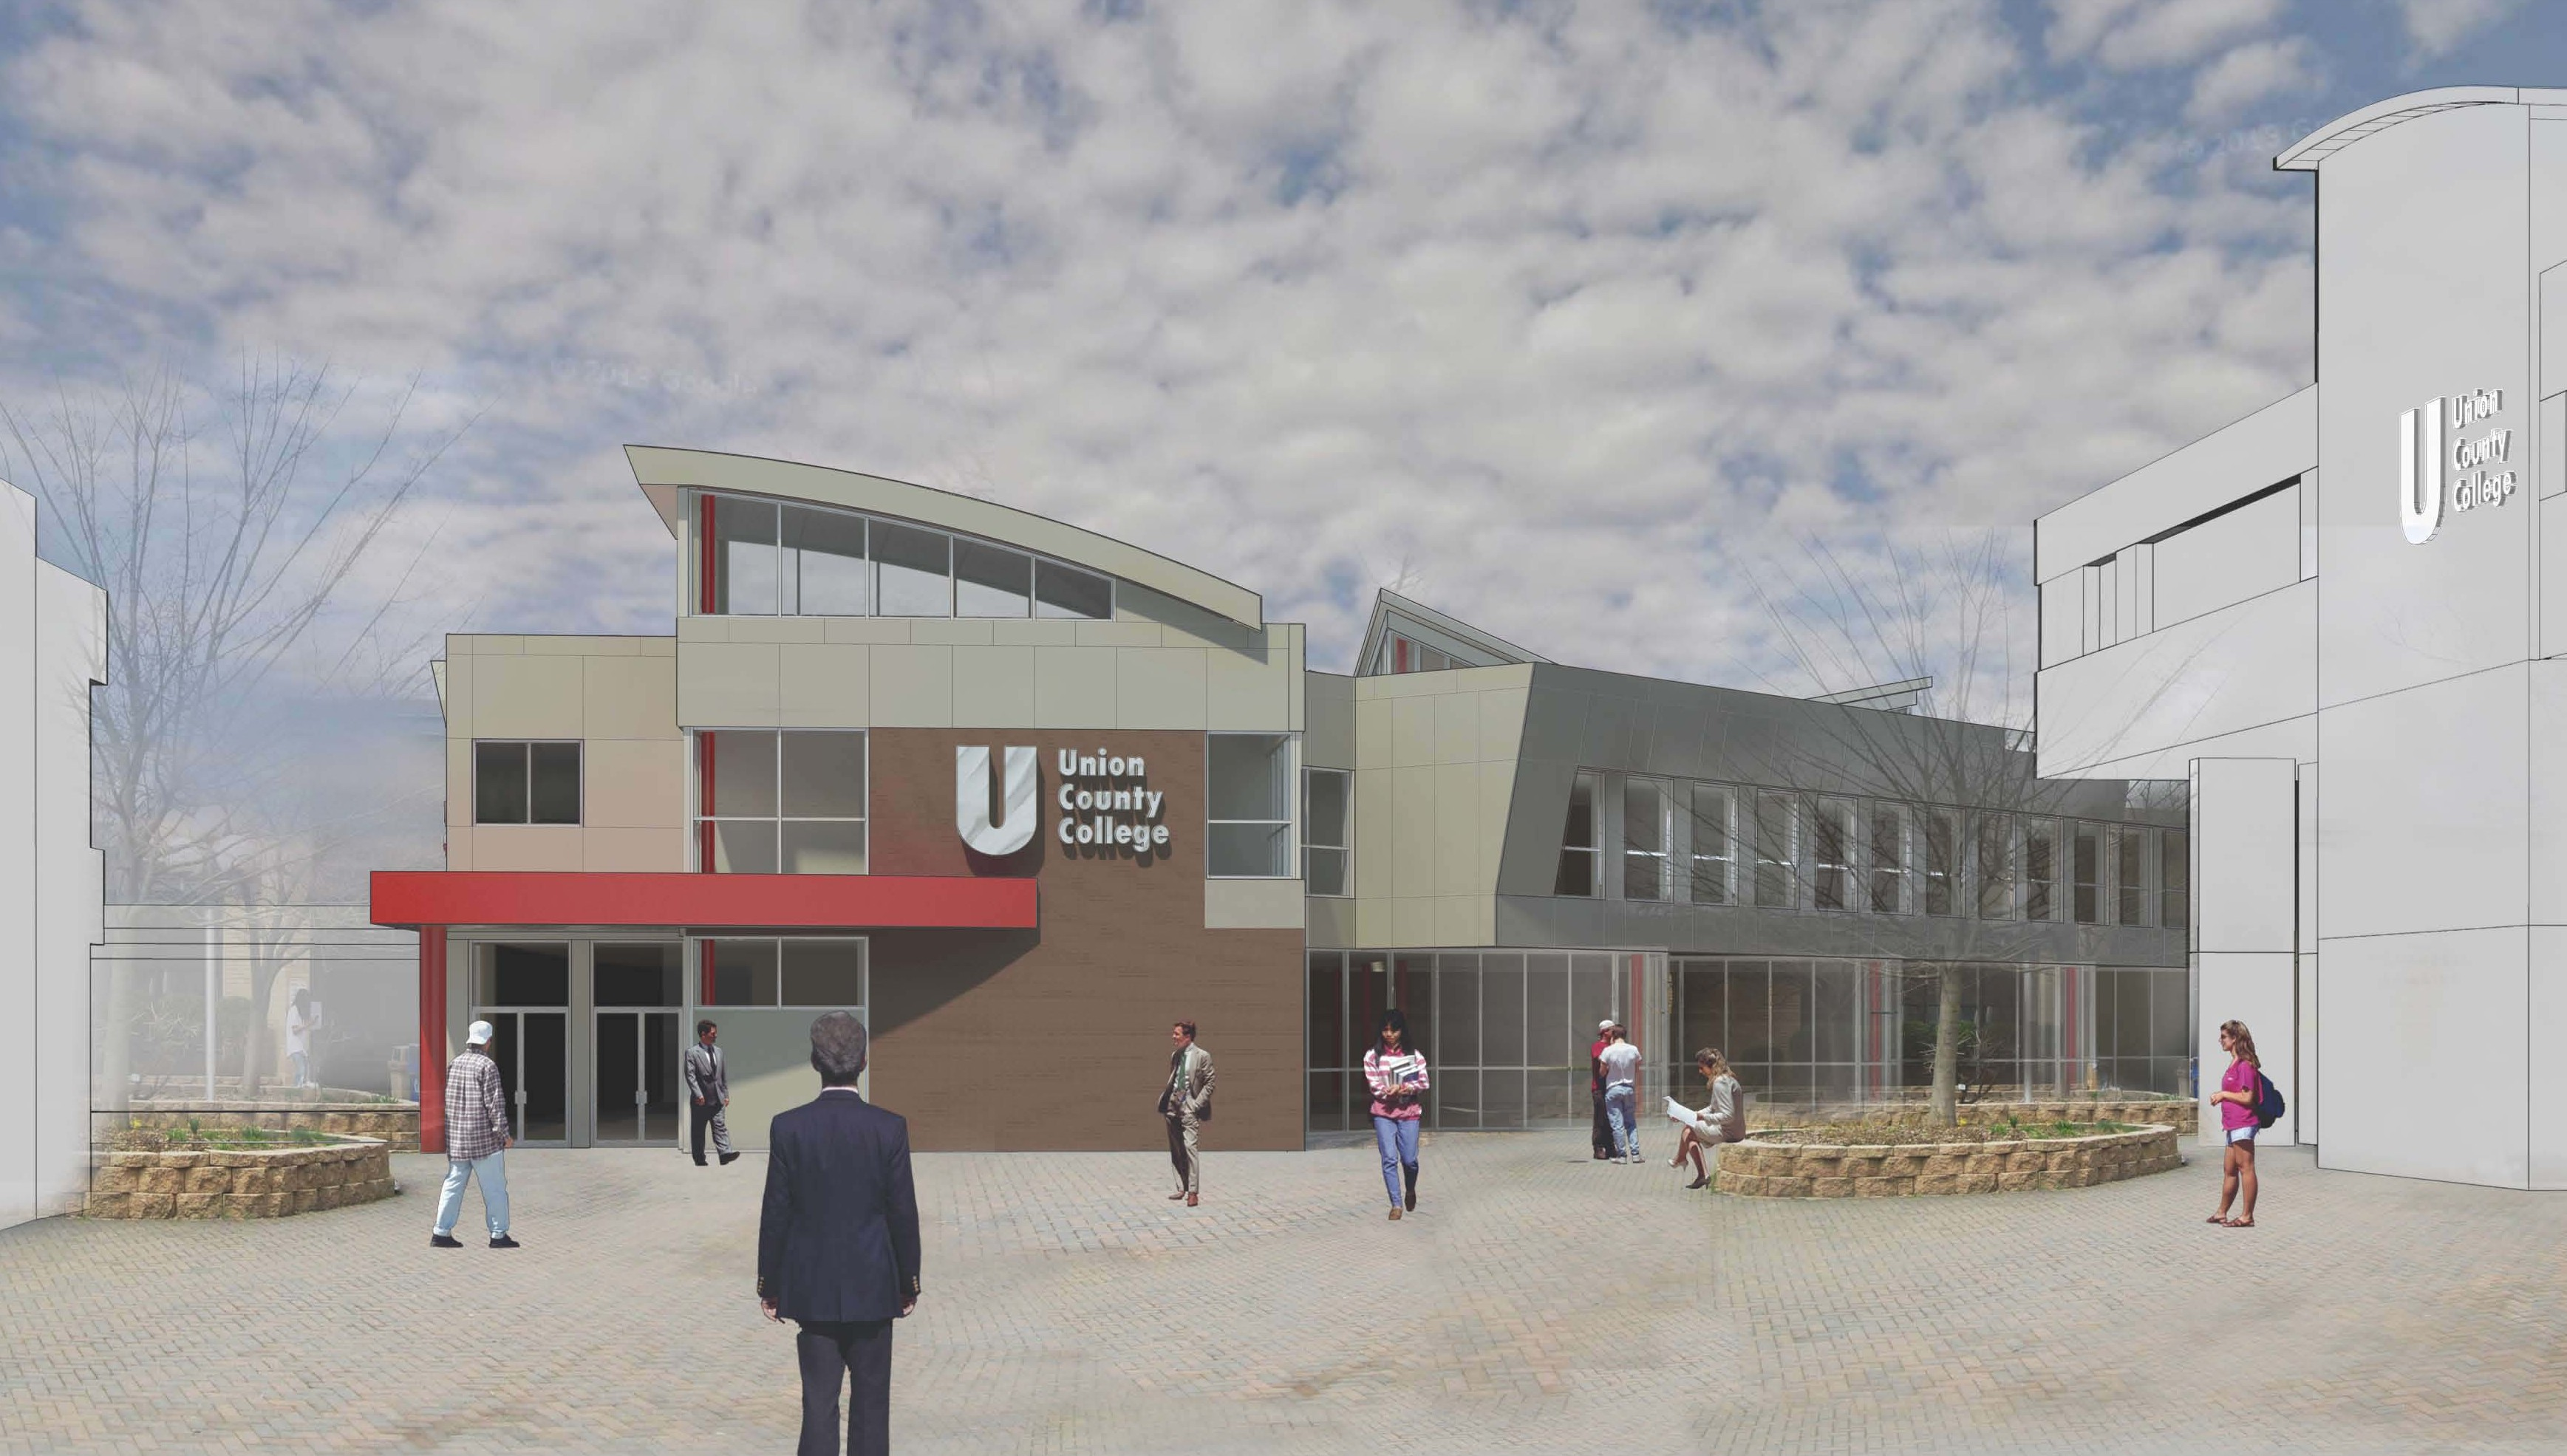 New jersey union county cranford - New Student Services Addition